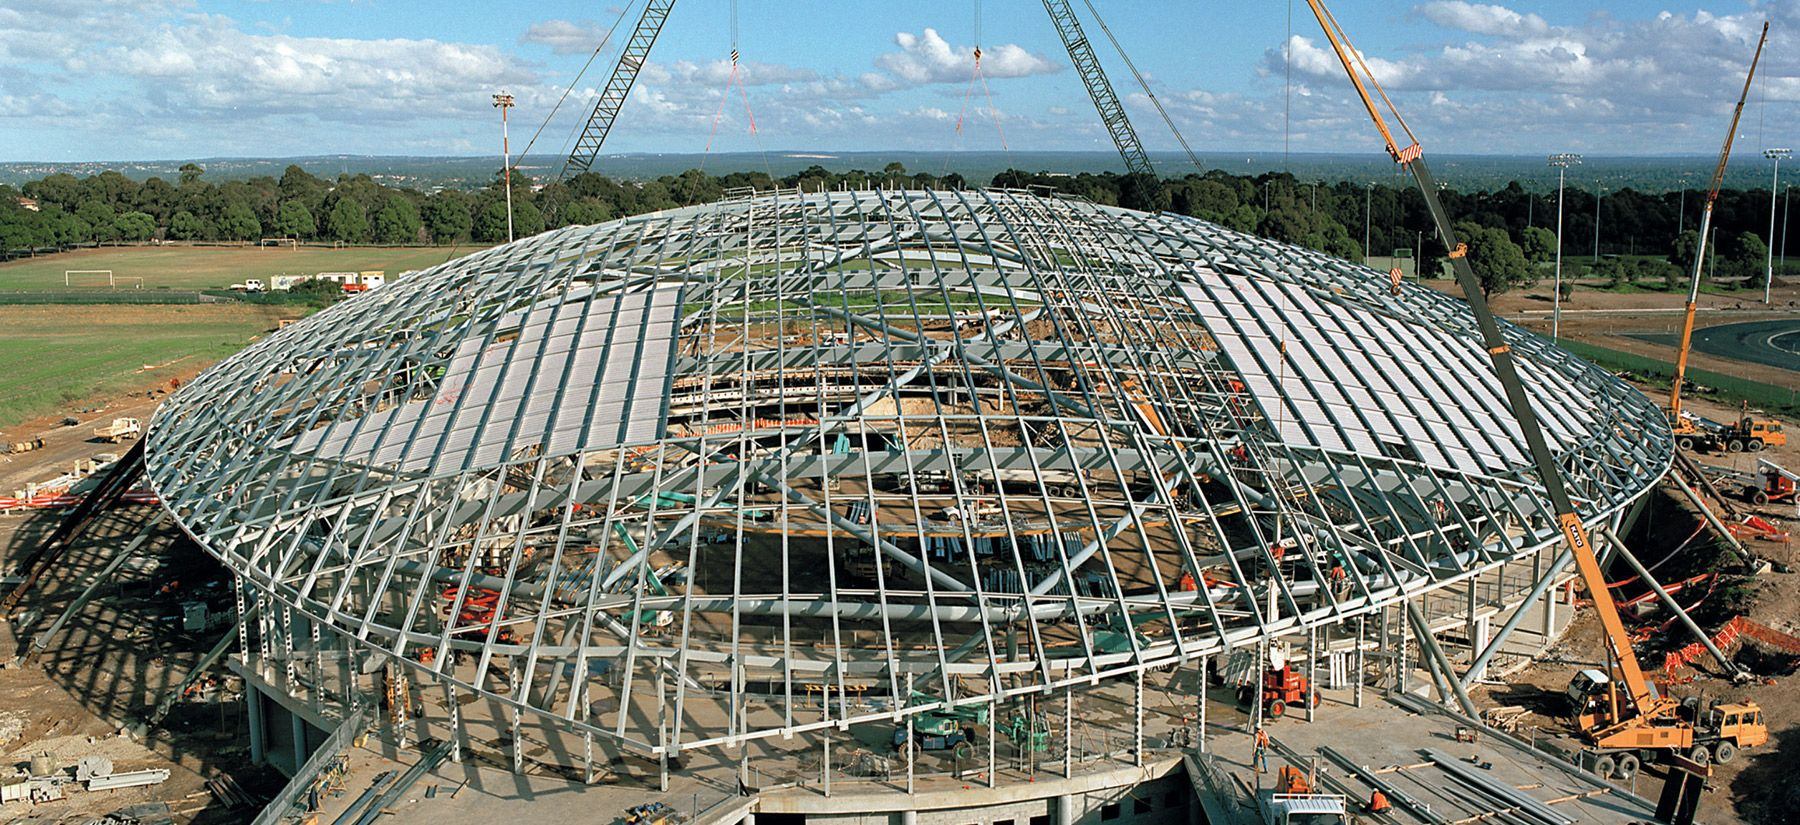 Lysaght Purlins And Girts Are Light Weight Structural Steel Sections Designed For Strength And Durability We Manufact Roofing Systems Roofing Steel Buildings